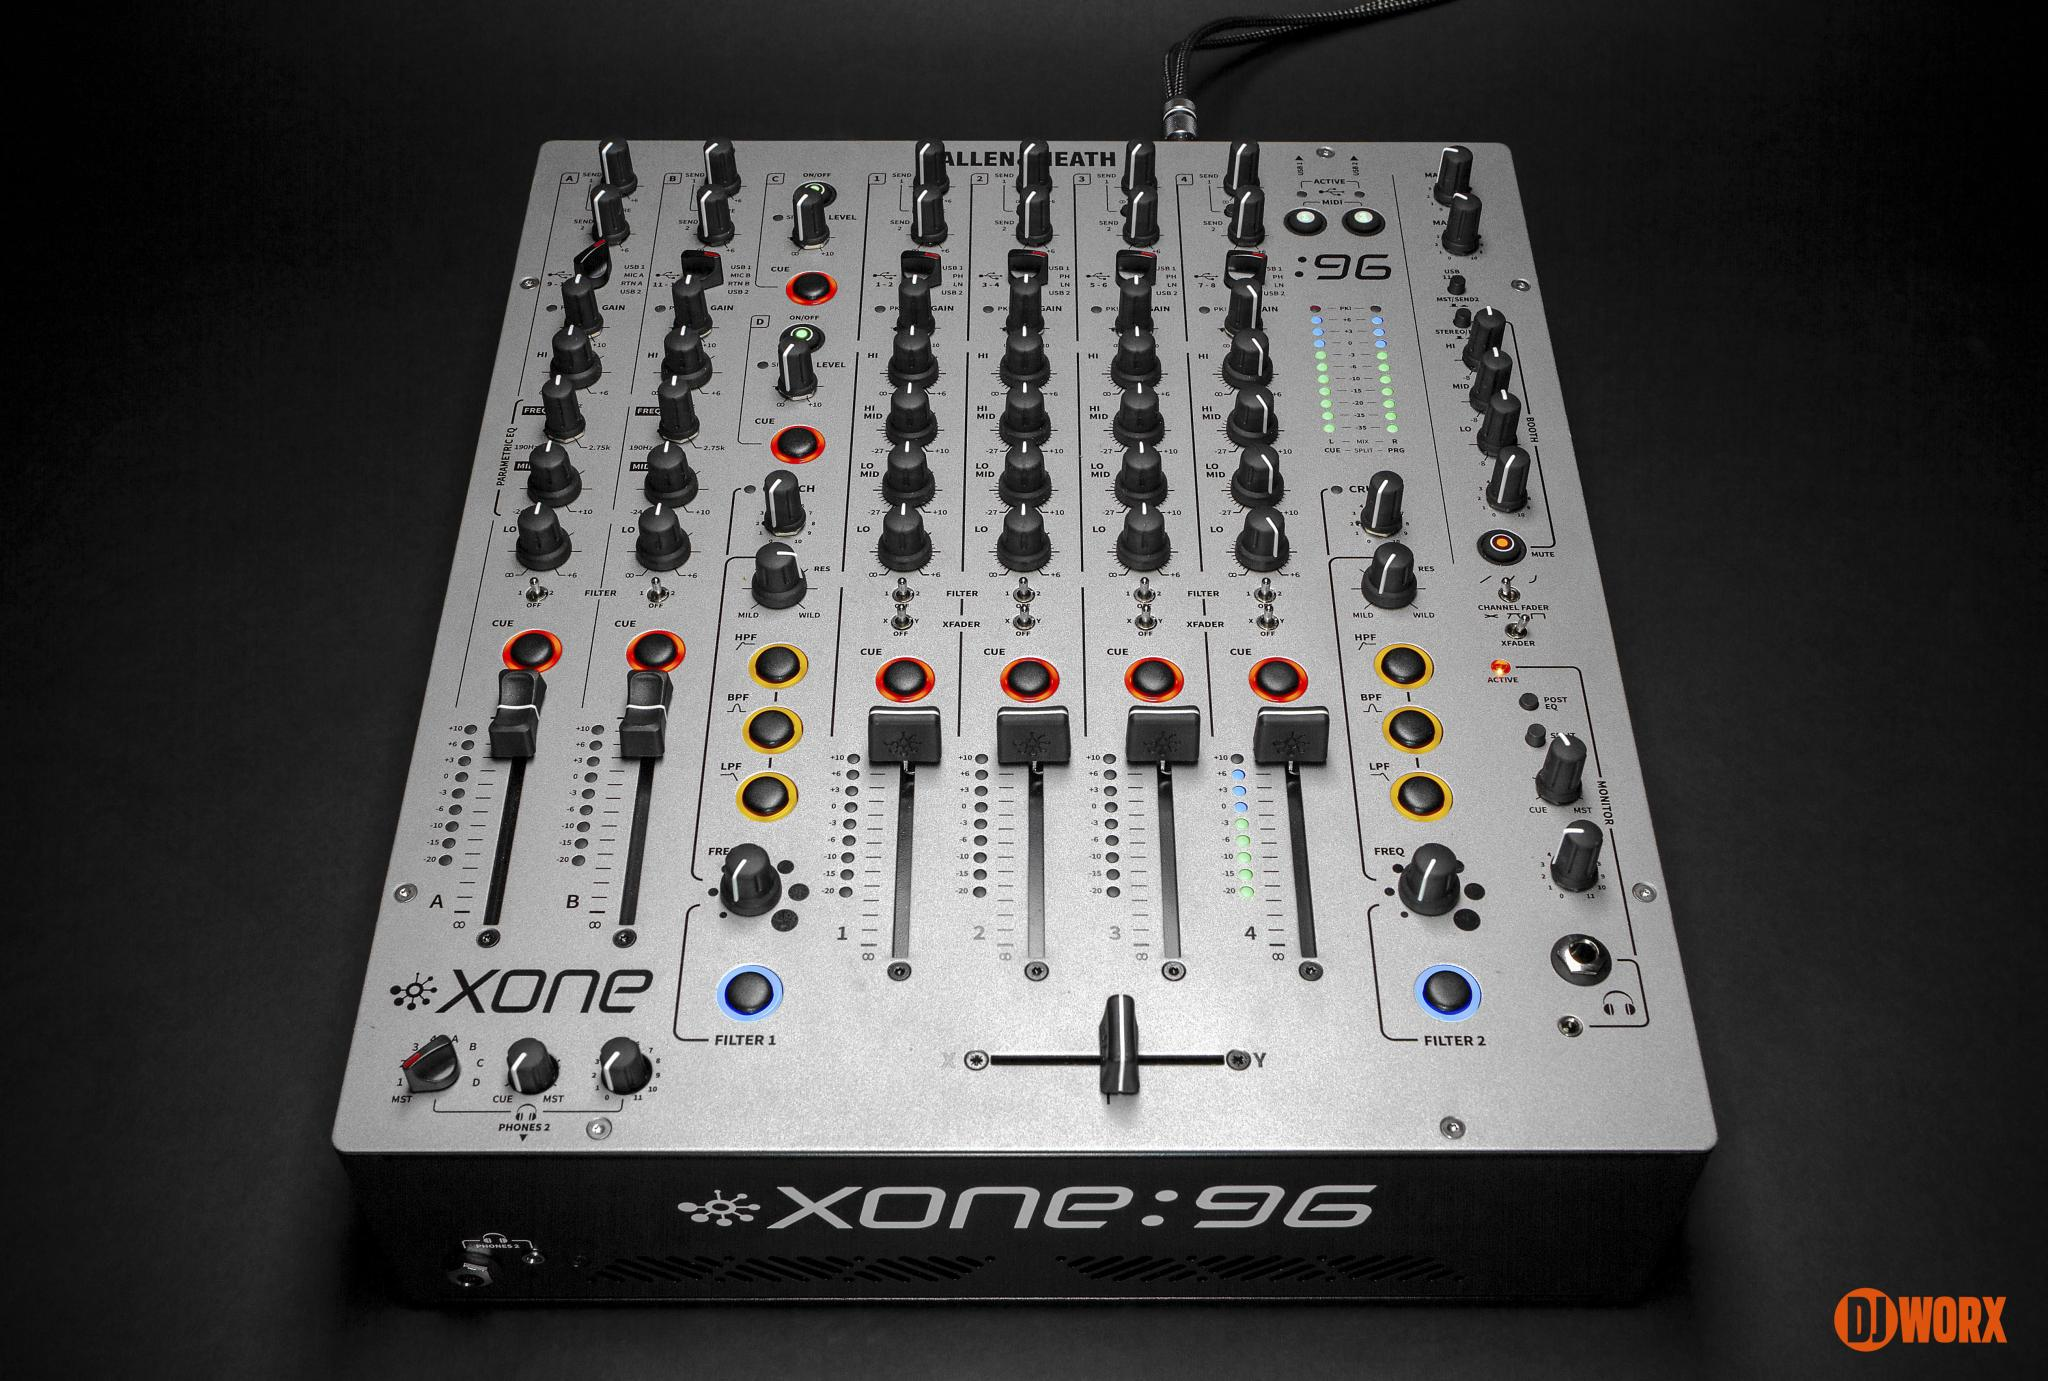 Allen & Heath Xone:96 mixer review first look preview (6)